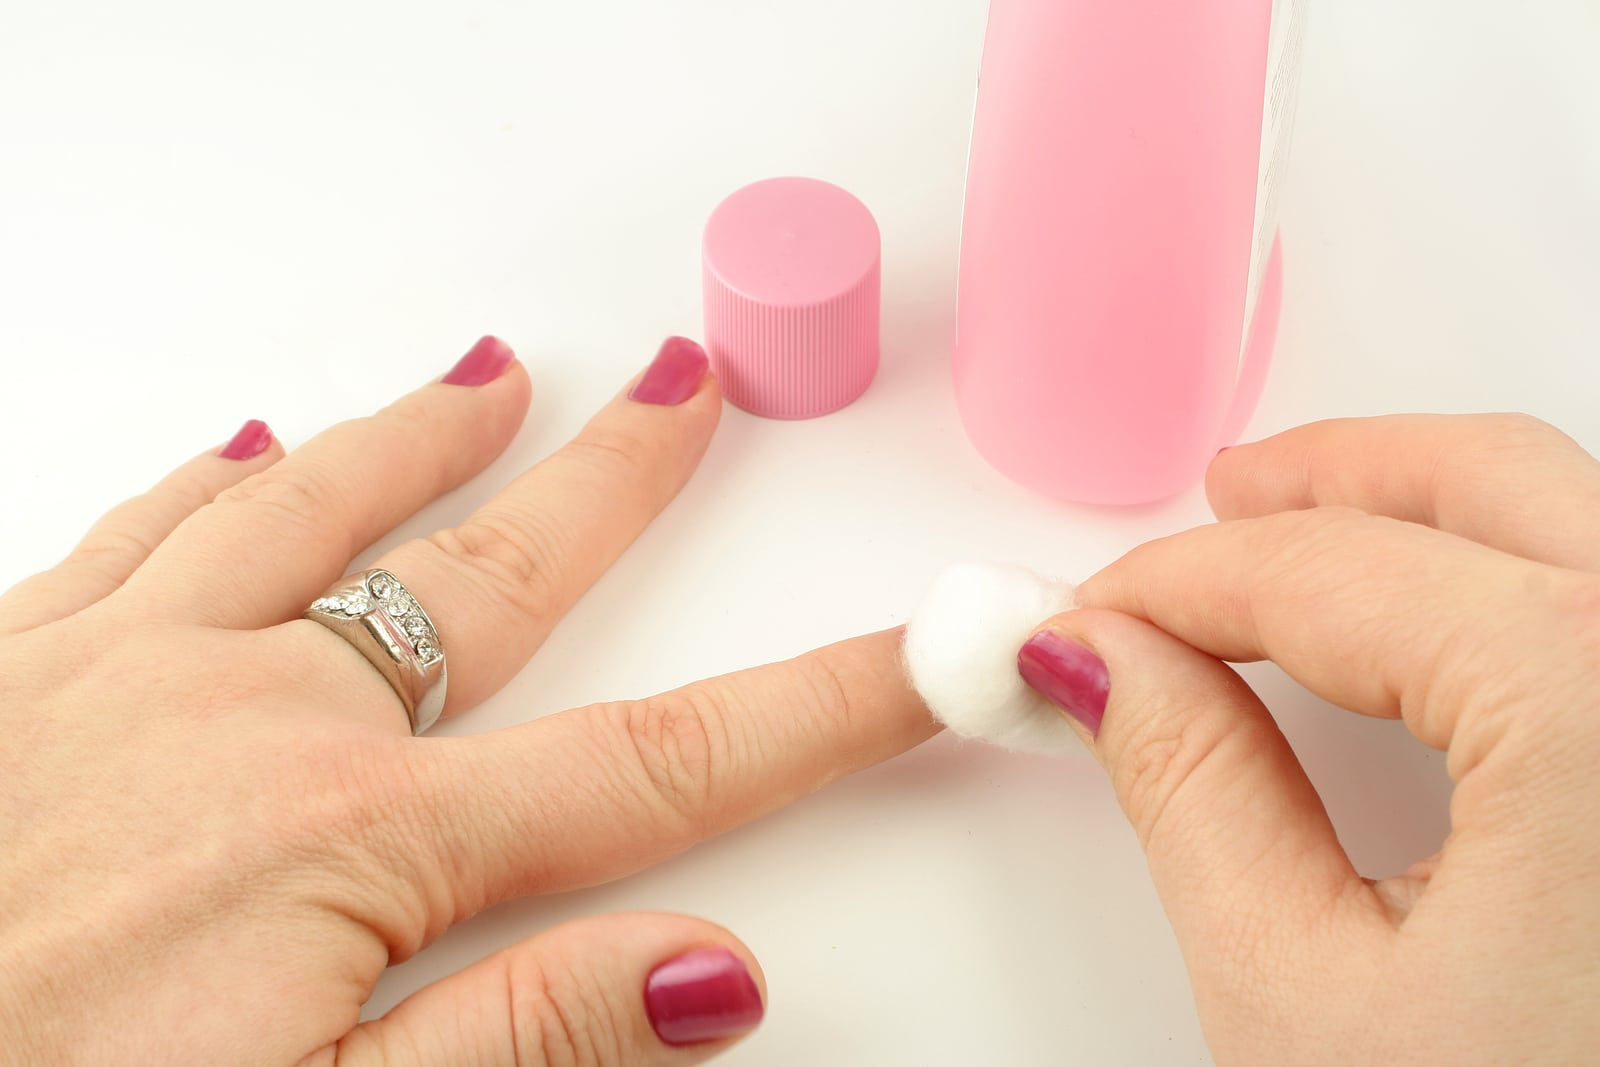 How To Pletely Remove Nailpolish Color From Your Nailsbeauty Junkees